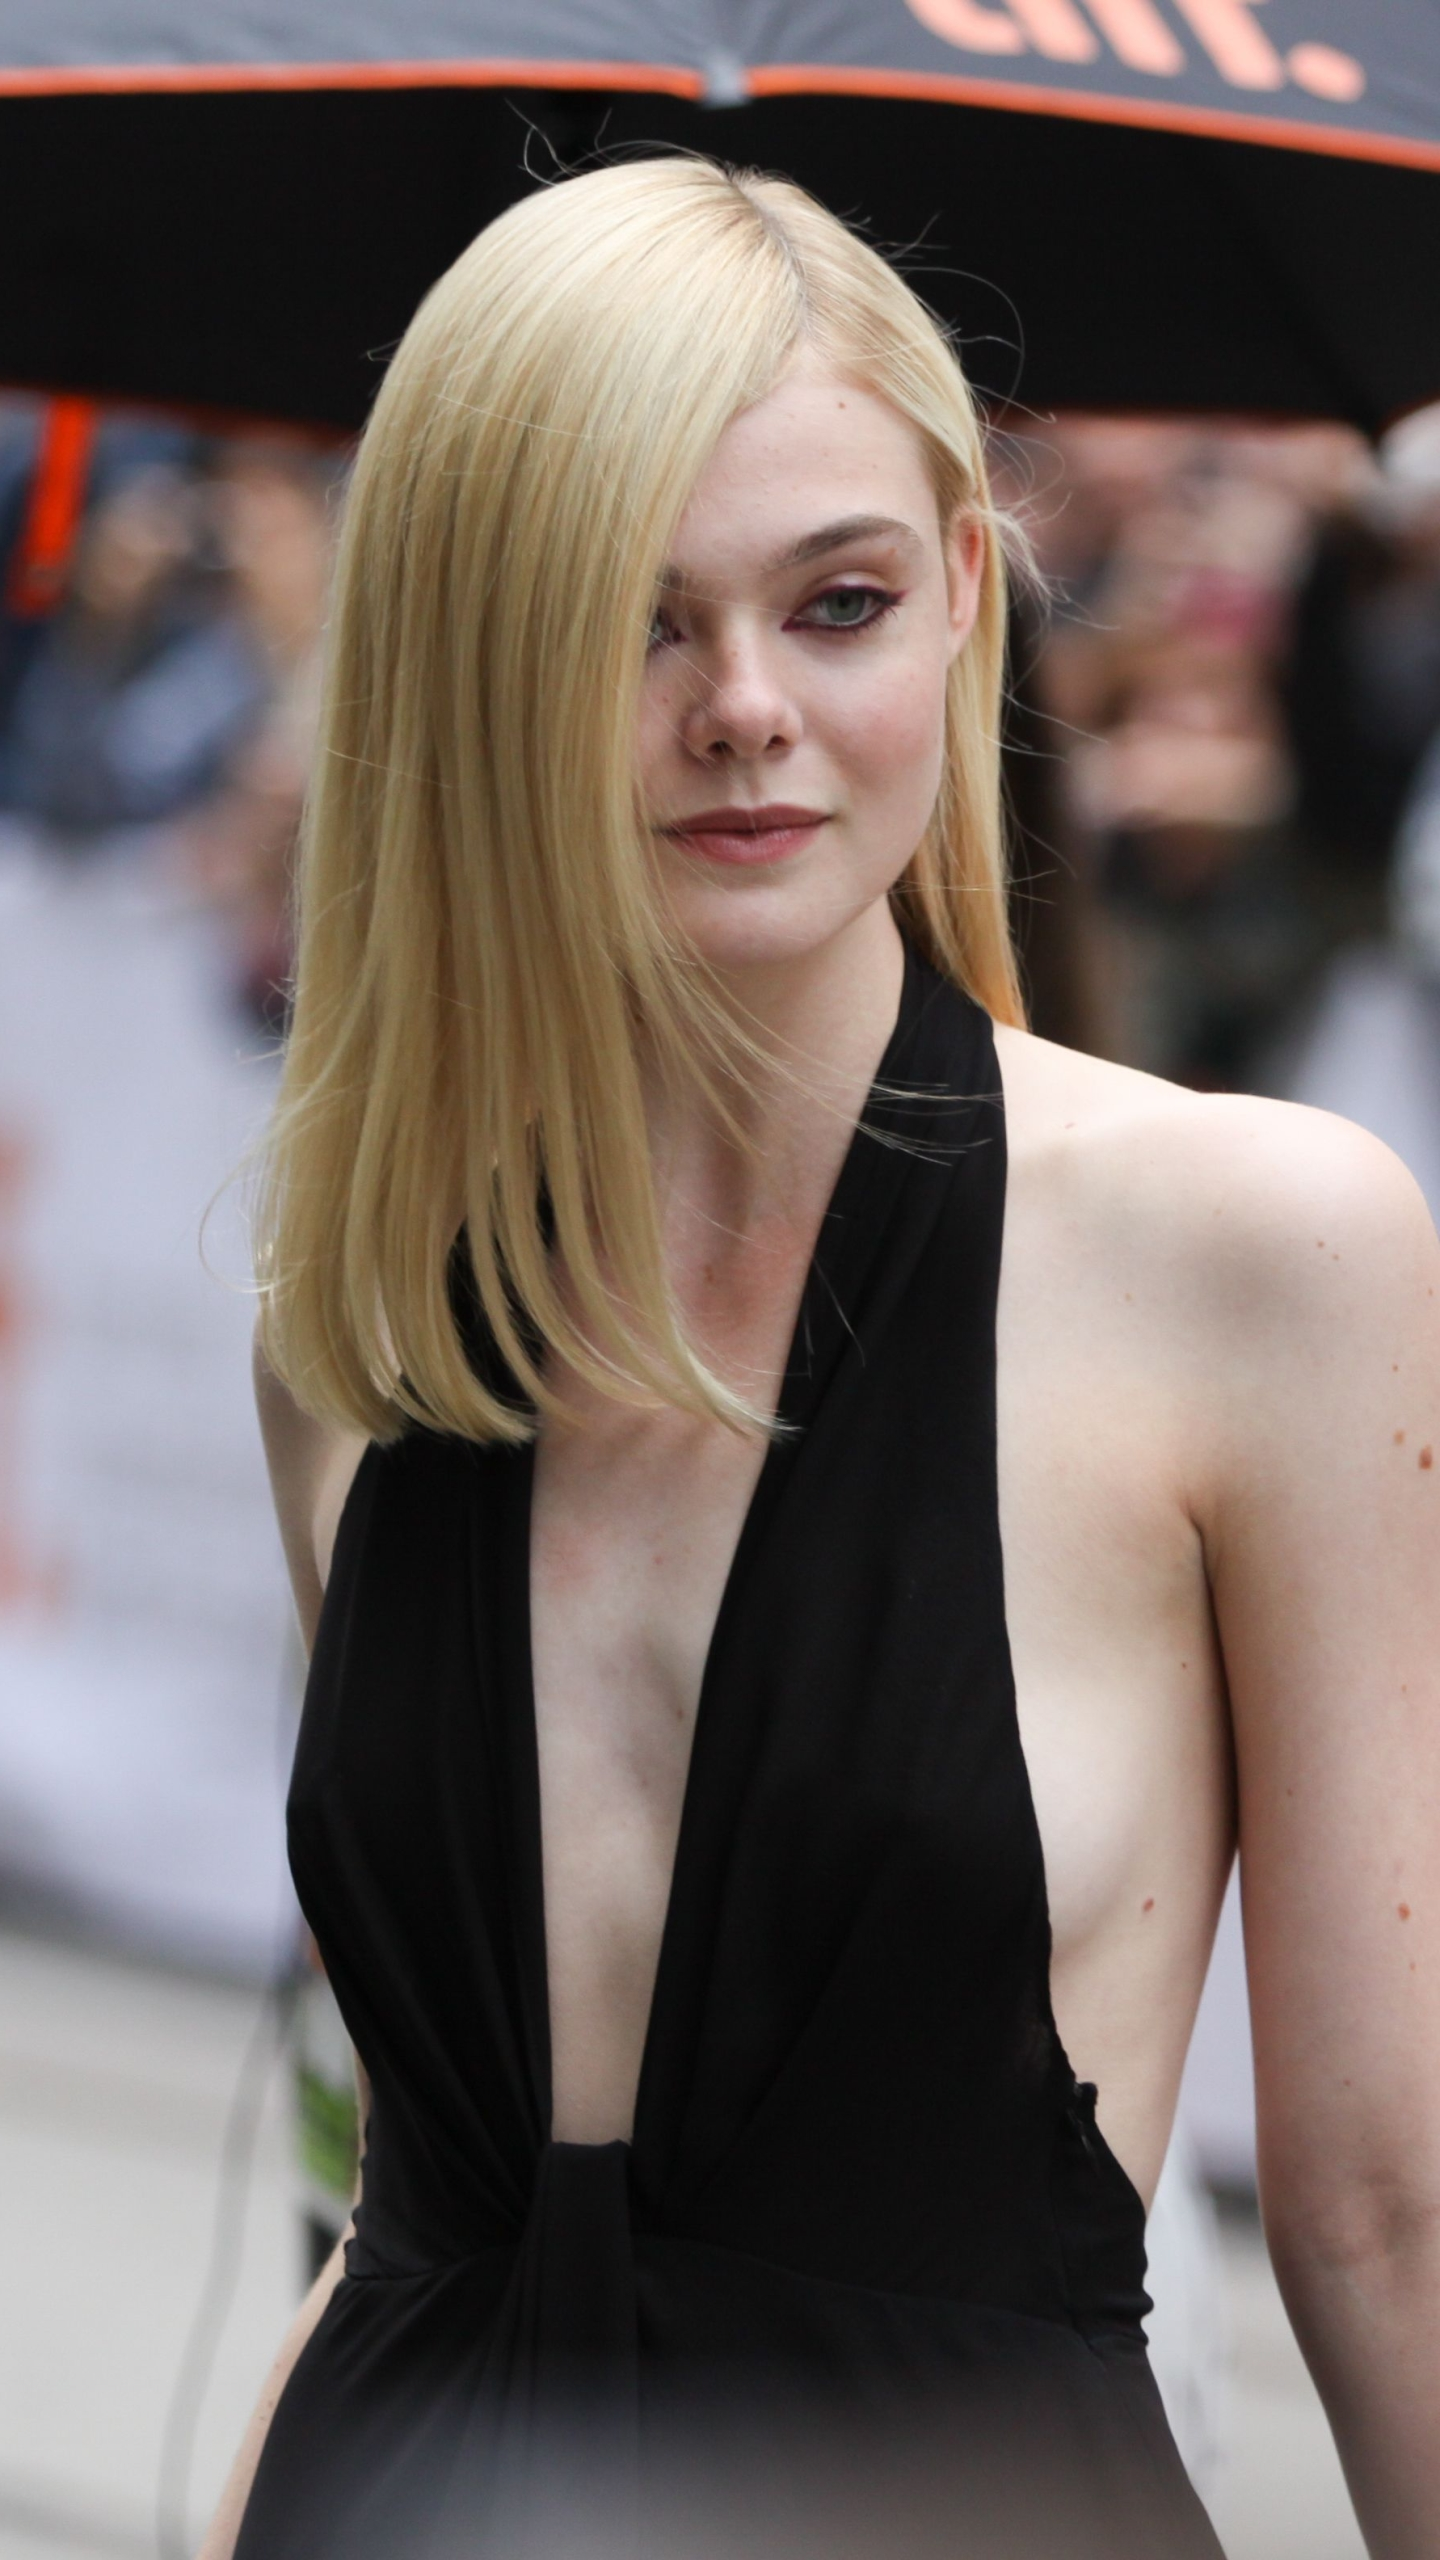 Wallpaper download iphone - Iphone 5 Celebrity Elle Fanning Wallpaper Id 622536